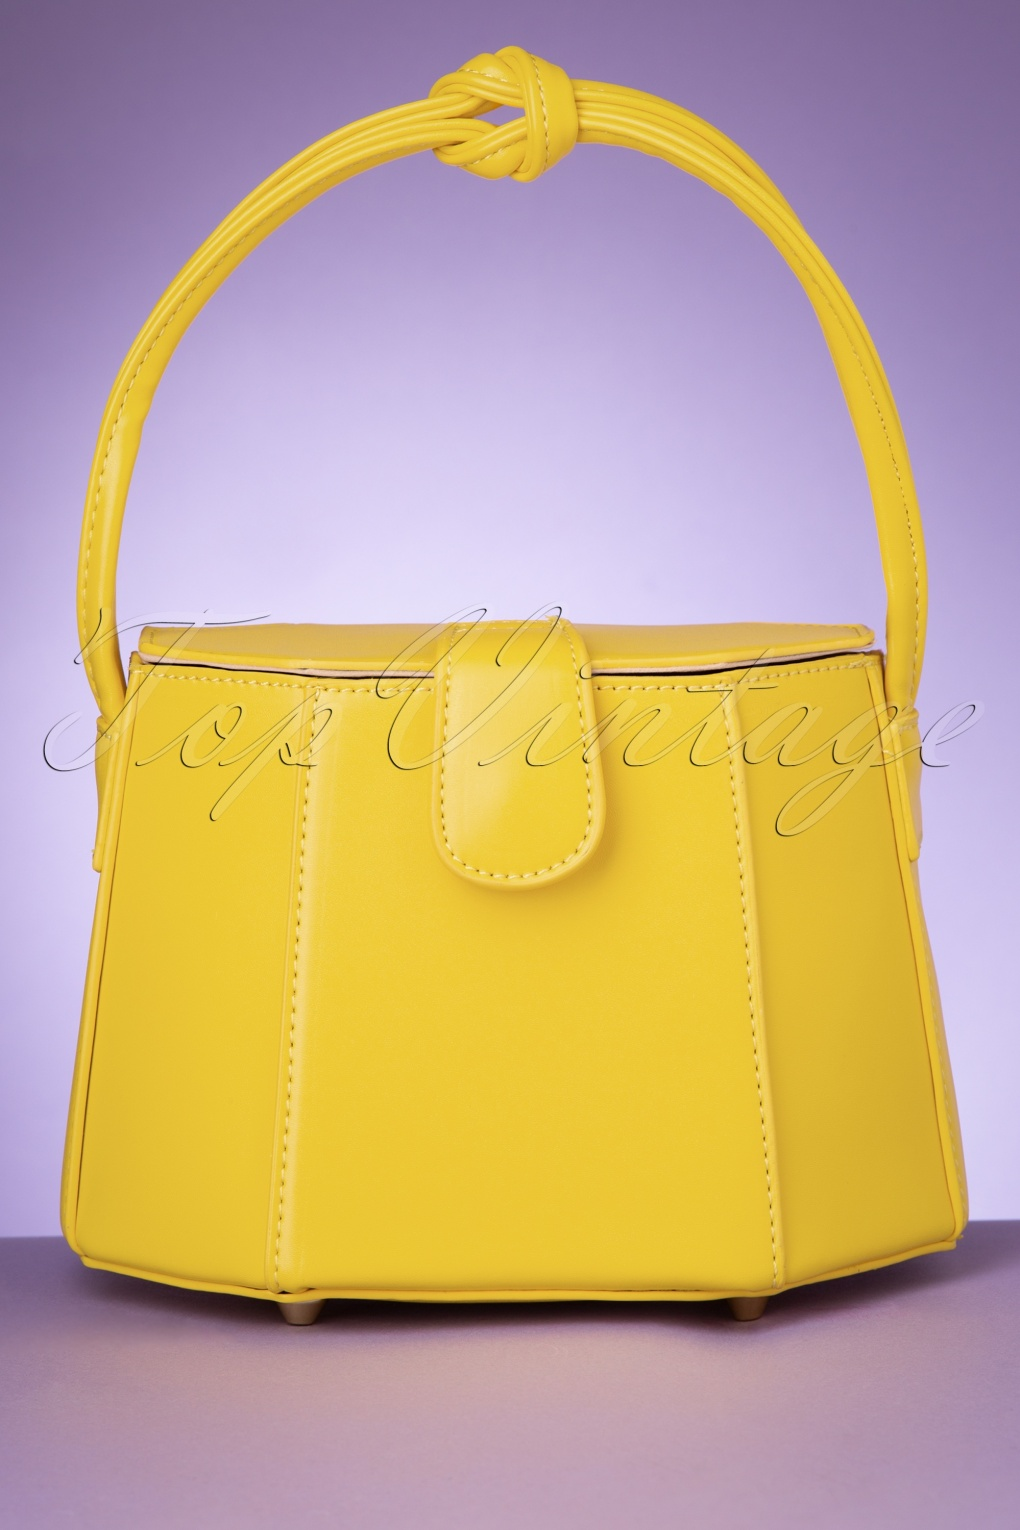 1950s Handbags, Purses, and Evening Bag Styles 50s Felicity Box Bag in Summer Yellow £38.91 AT vintagedancer.com